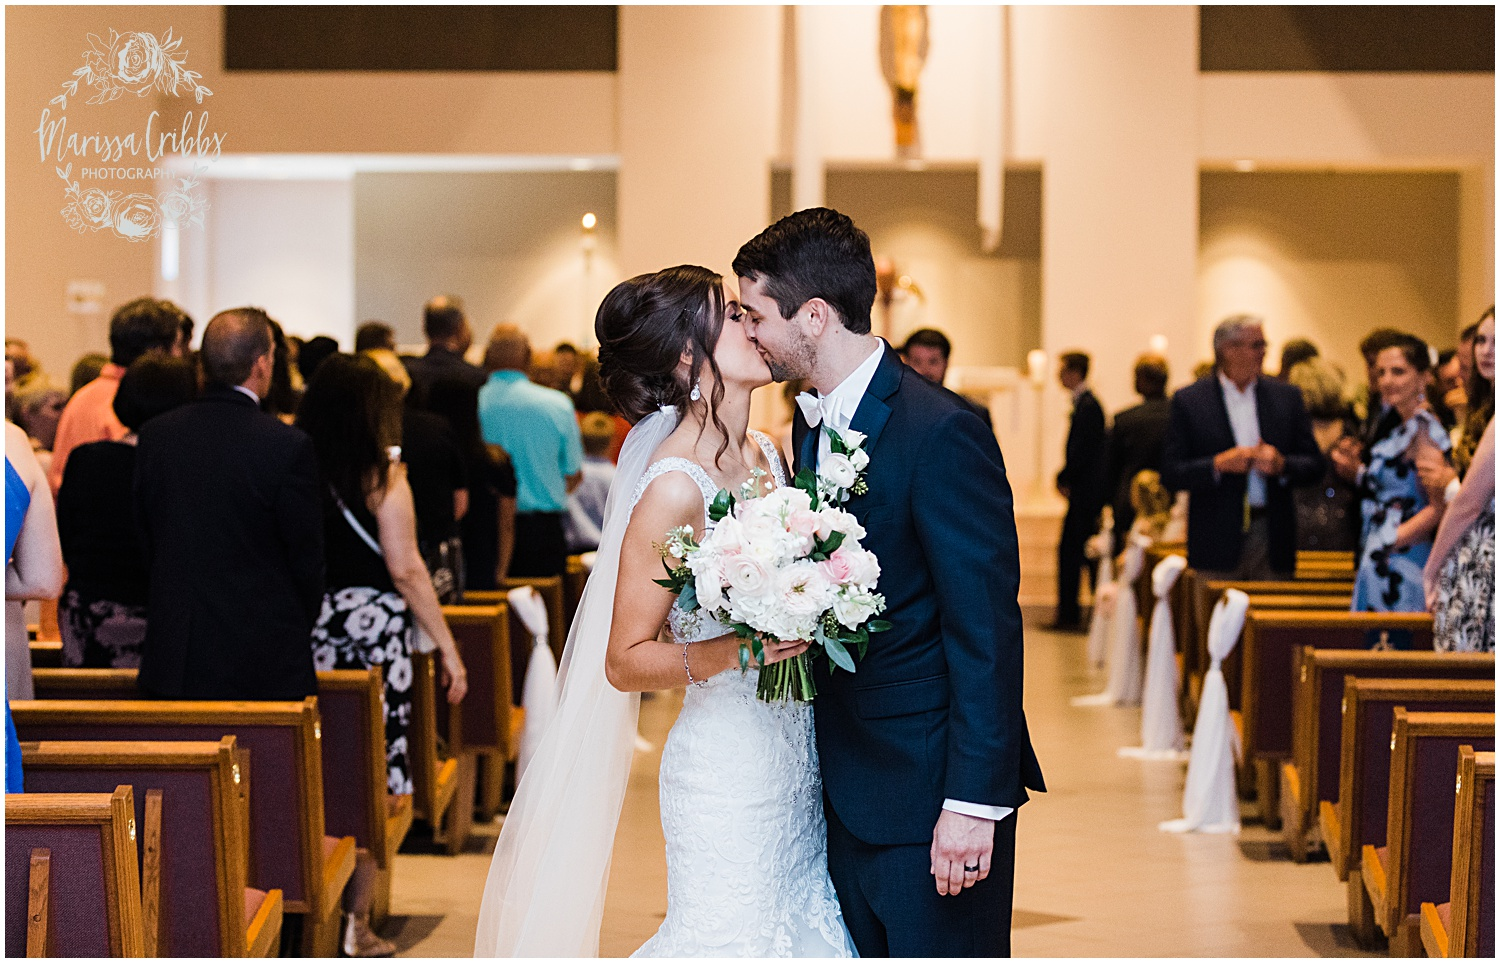 MEGAN & DEREK WEDDING BLOG | MARISSA CRIBBS PHOTOGRAPHY_8142.jpg